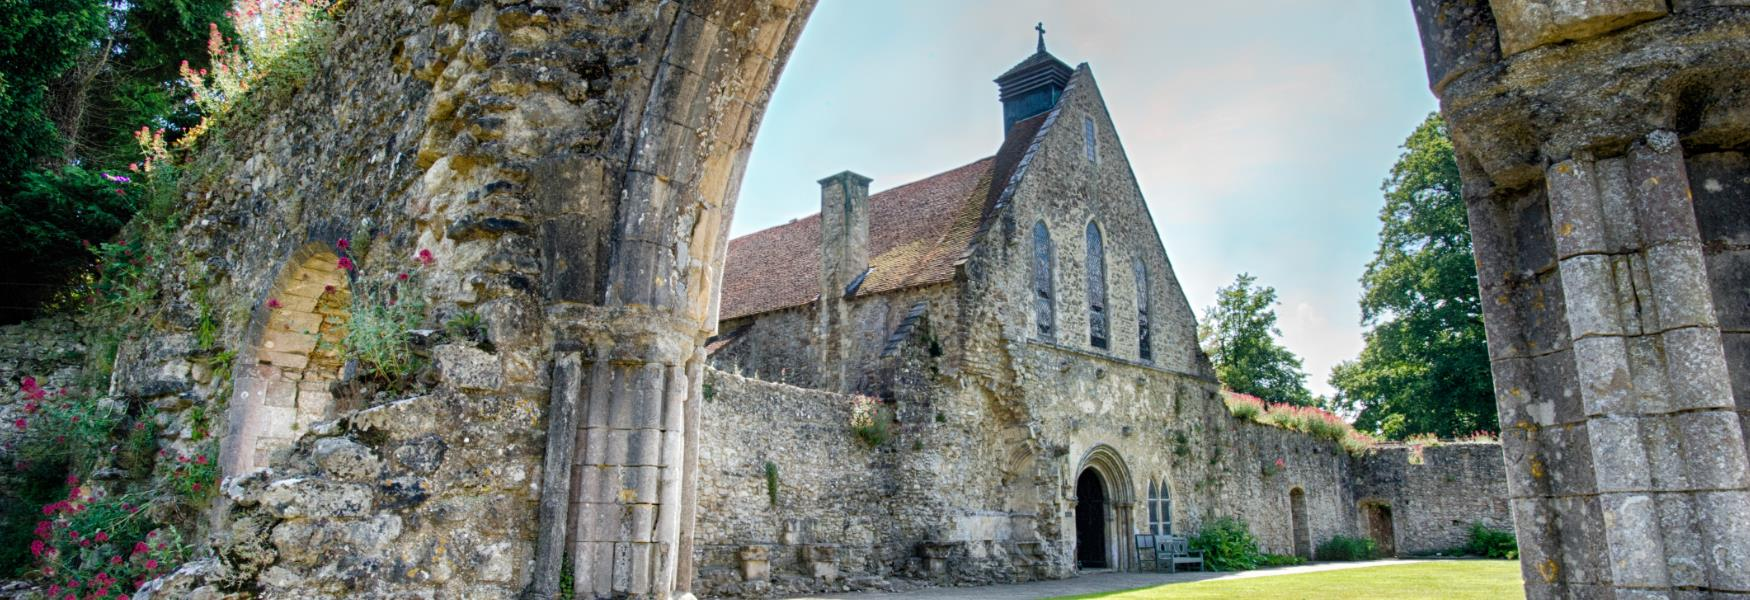 Beaulieu Abbey Historic Site in the New Forest